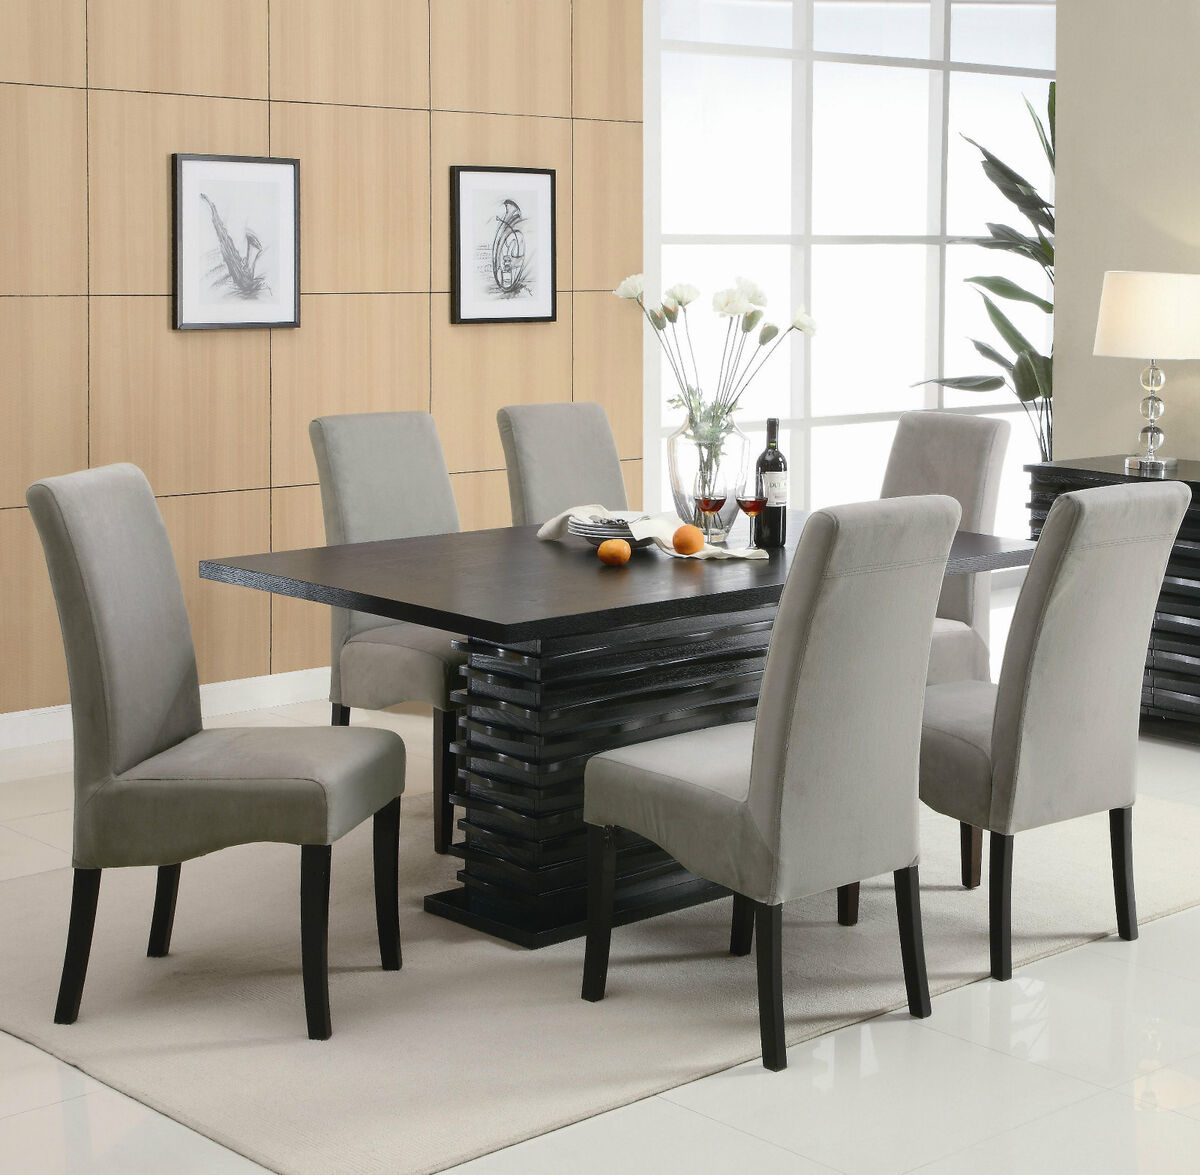 Dining table furniture contemporary dining table chairs for Dining room furniture modern